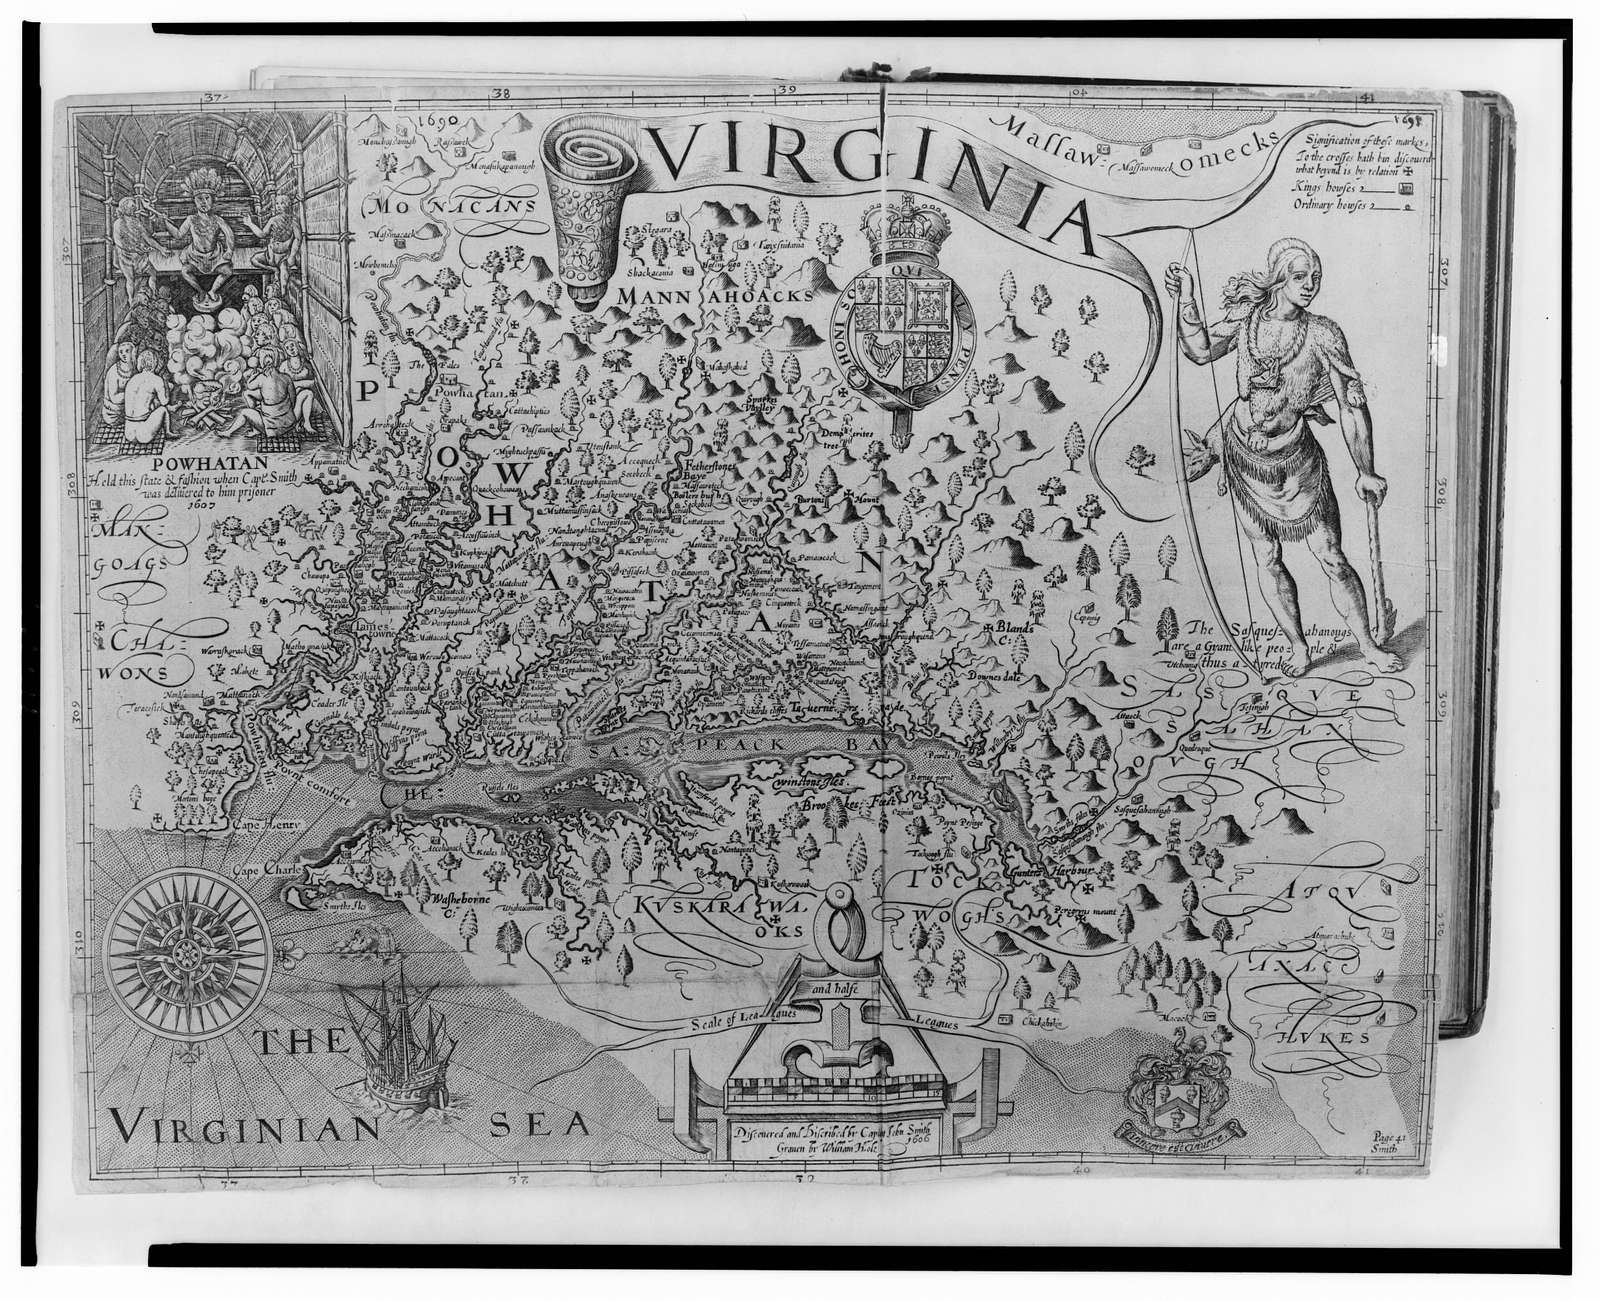 [Map of Virginia] / discovered and discribed [sic] by Captain John Smith 1606 [?] William Hole.